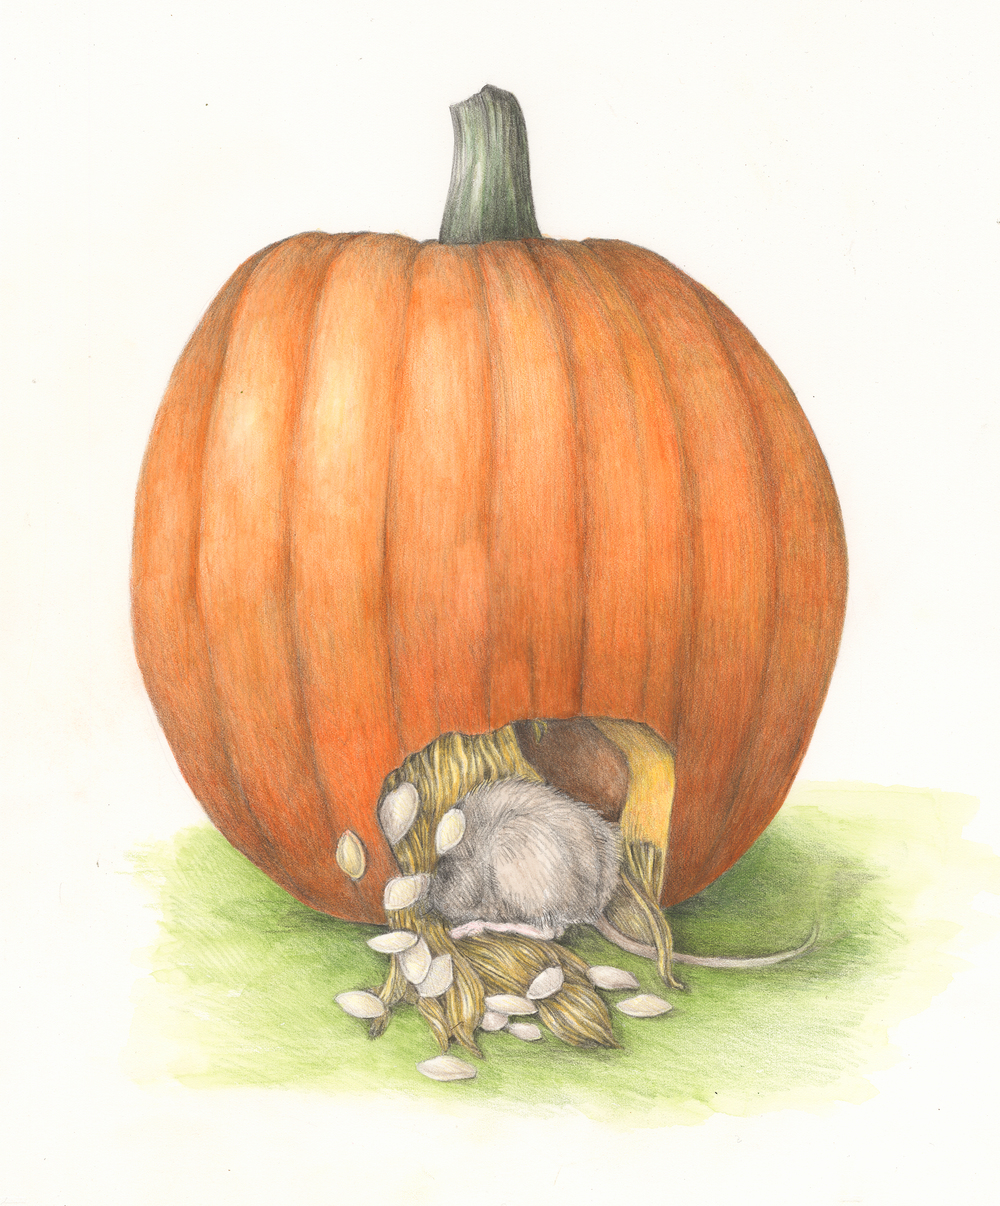 The mouse explores inside a pumpkin